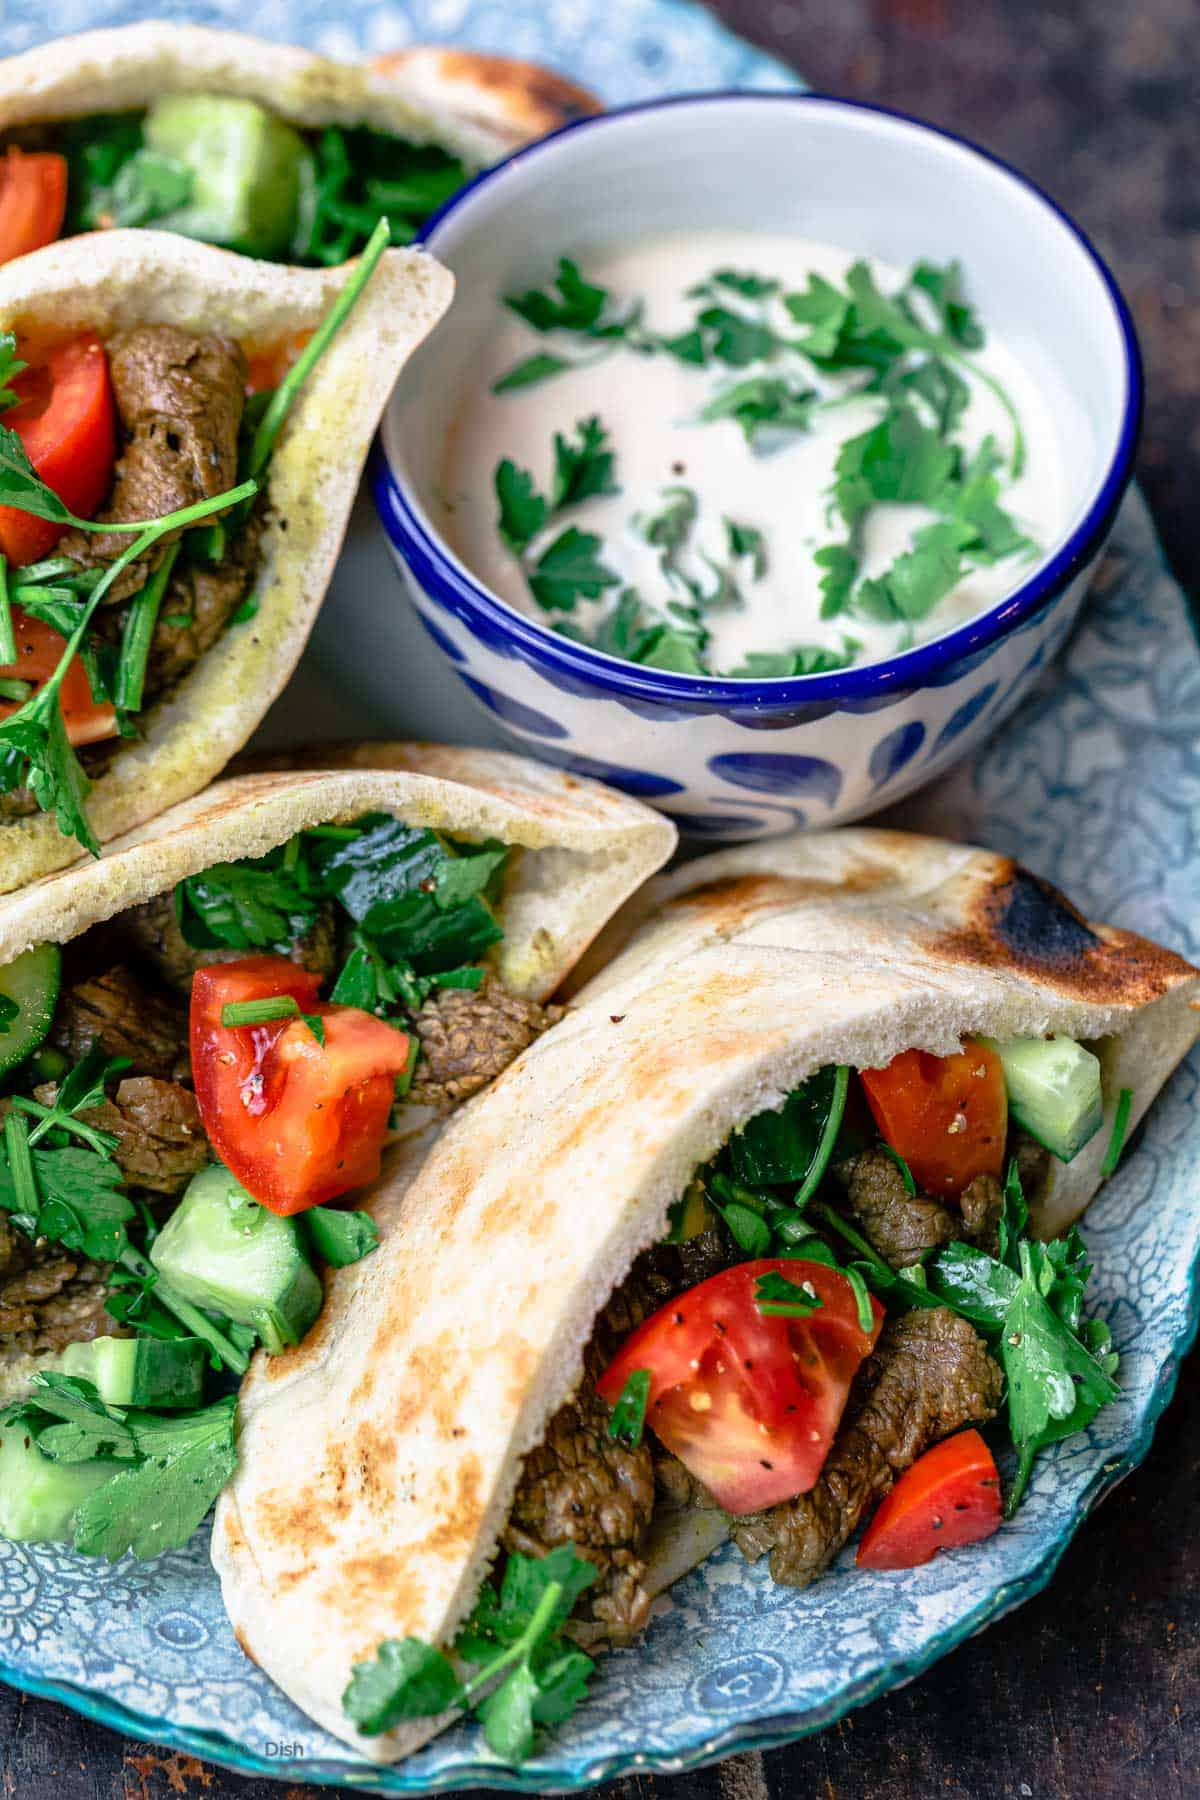 Beef shawarma pitas served on a blue plate with a side of tahini sauce